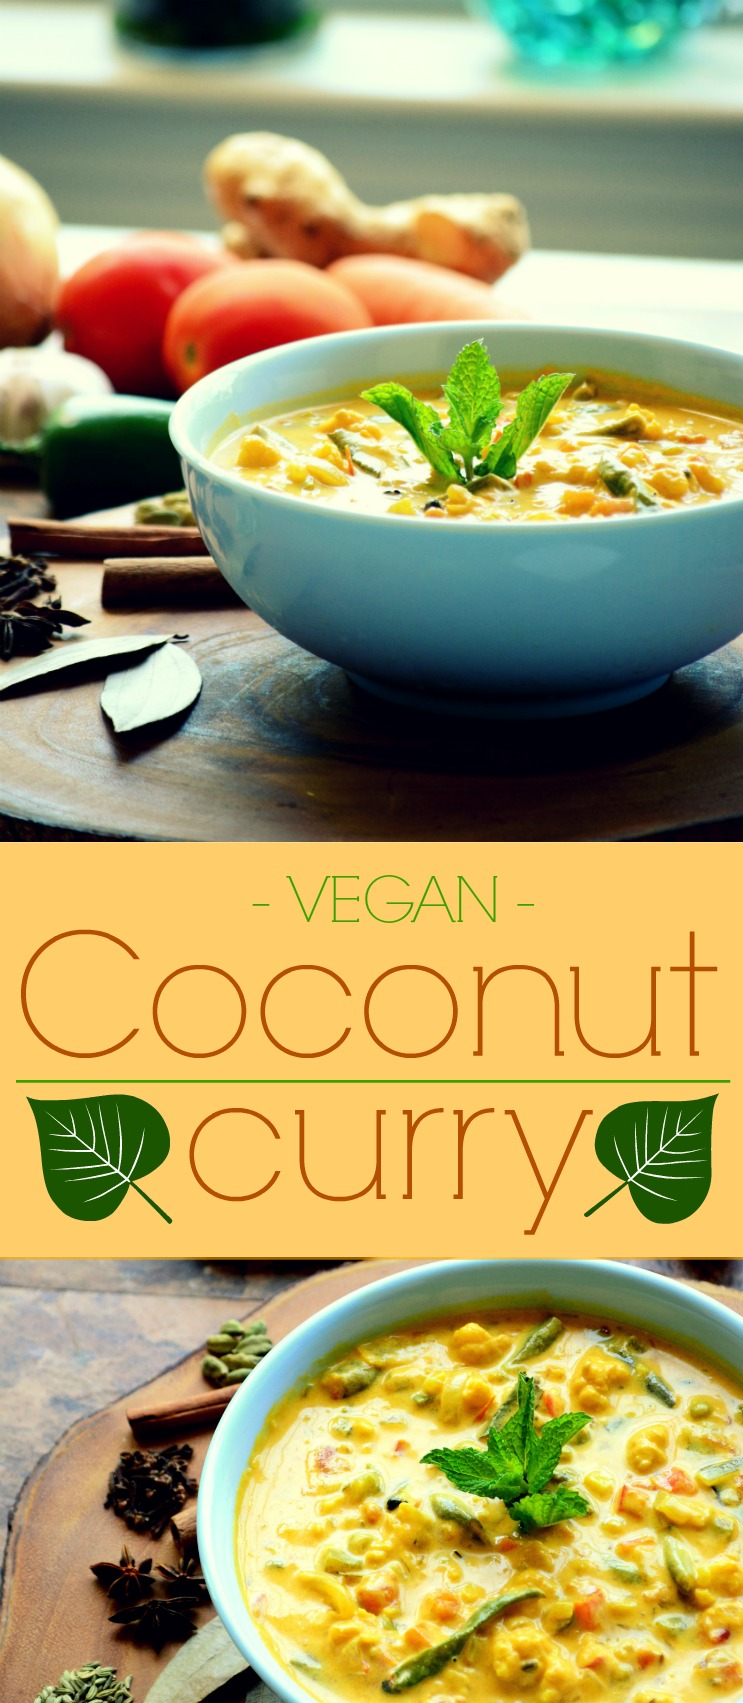 Vegan Coconut Curry Pin